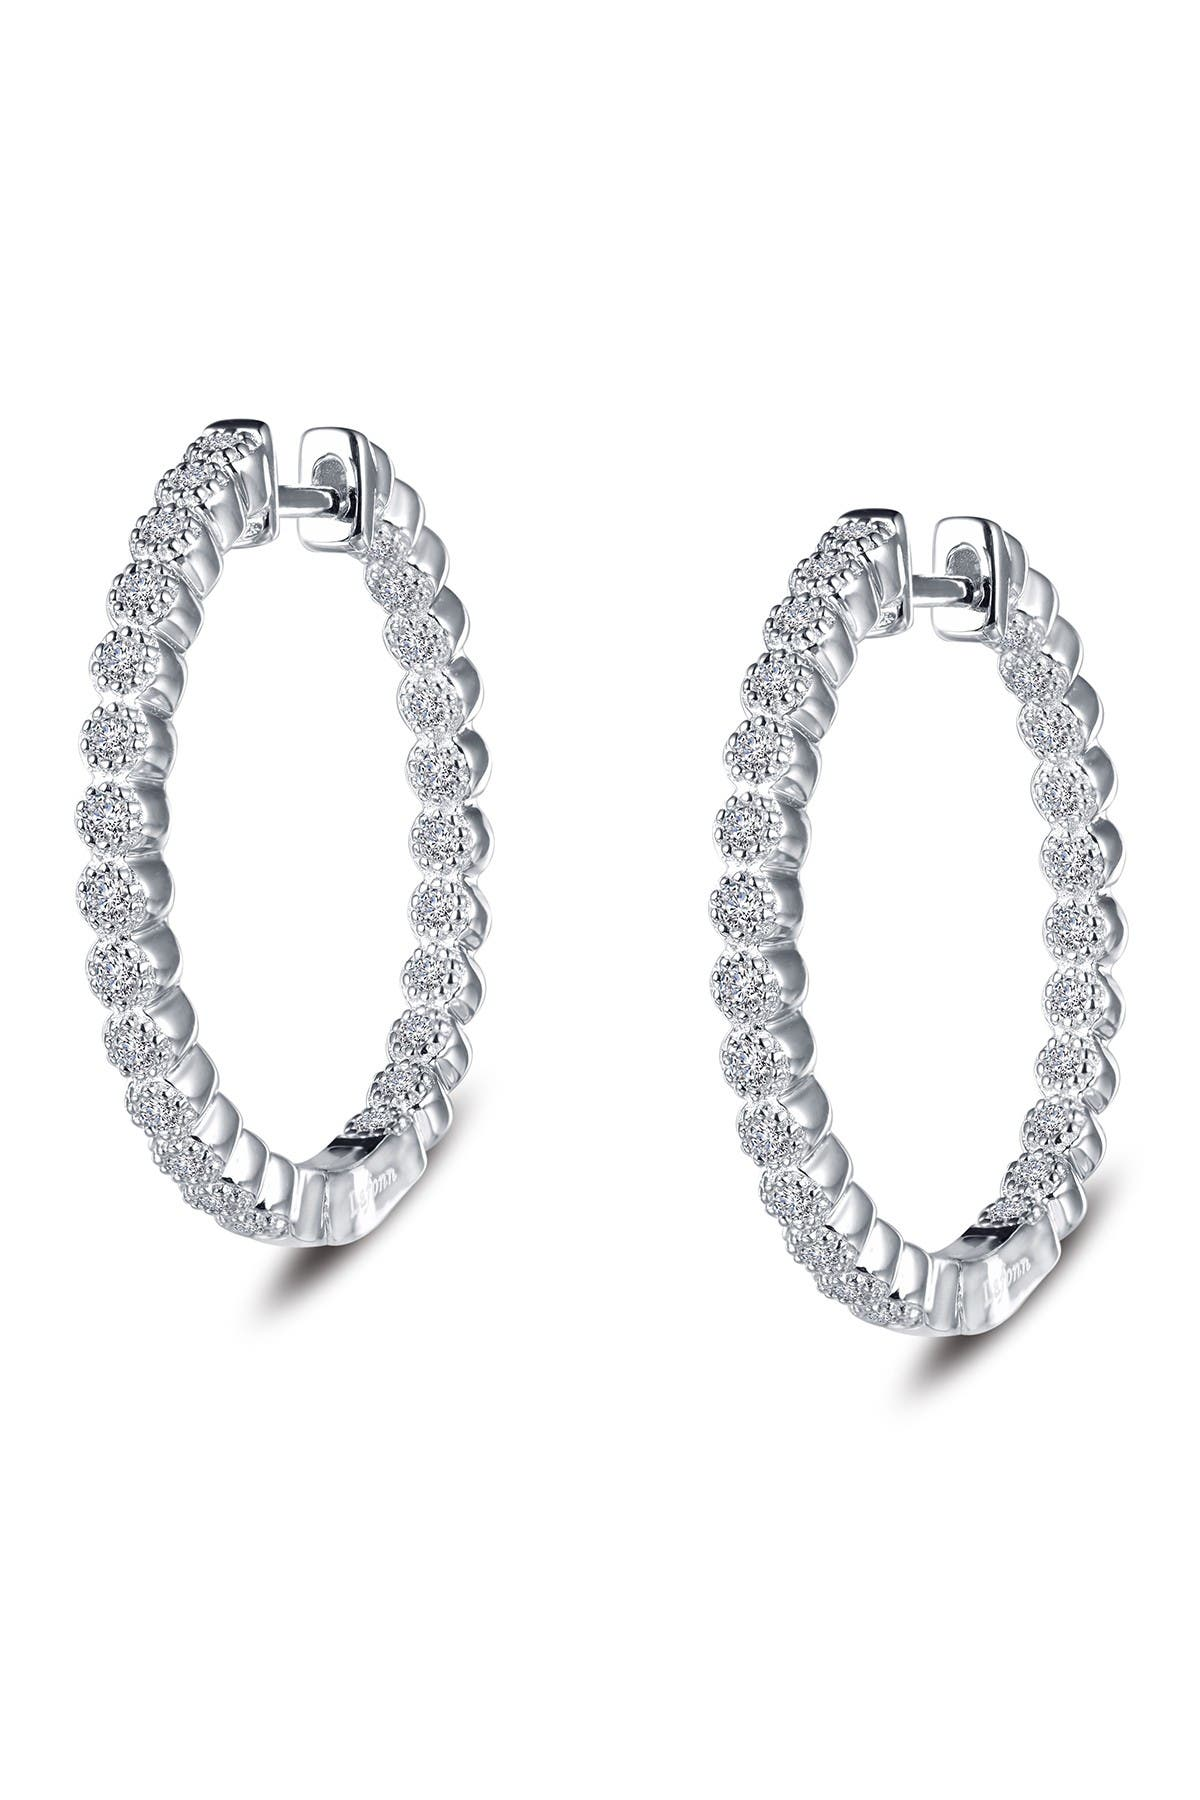 Image of LaFonn Platinum Plated Sterling Silver Simulated Diamonds Accented Hoop Earrings